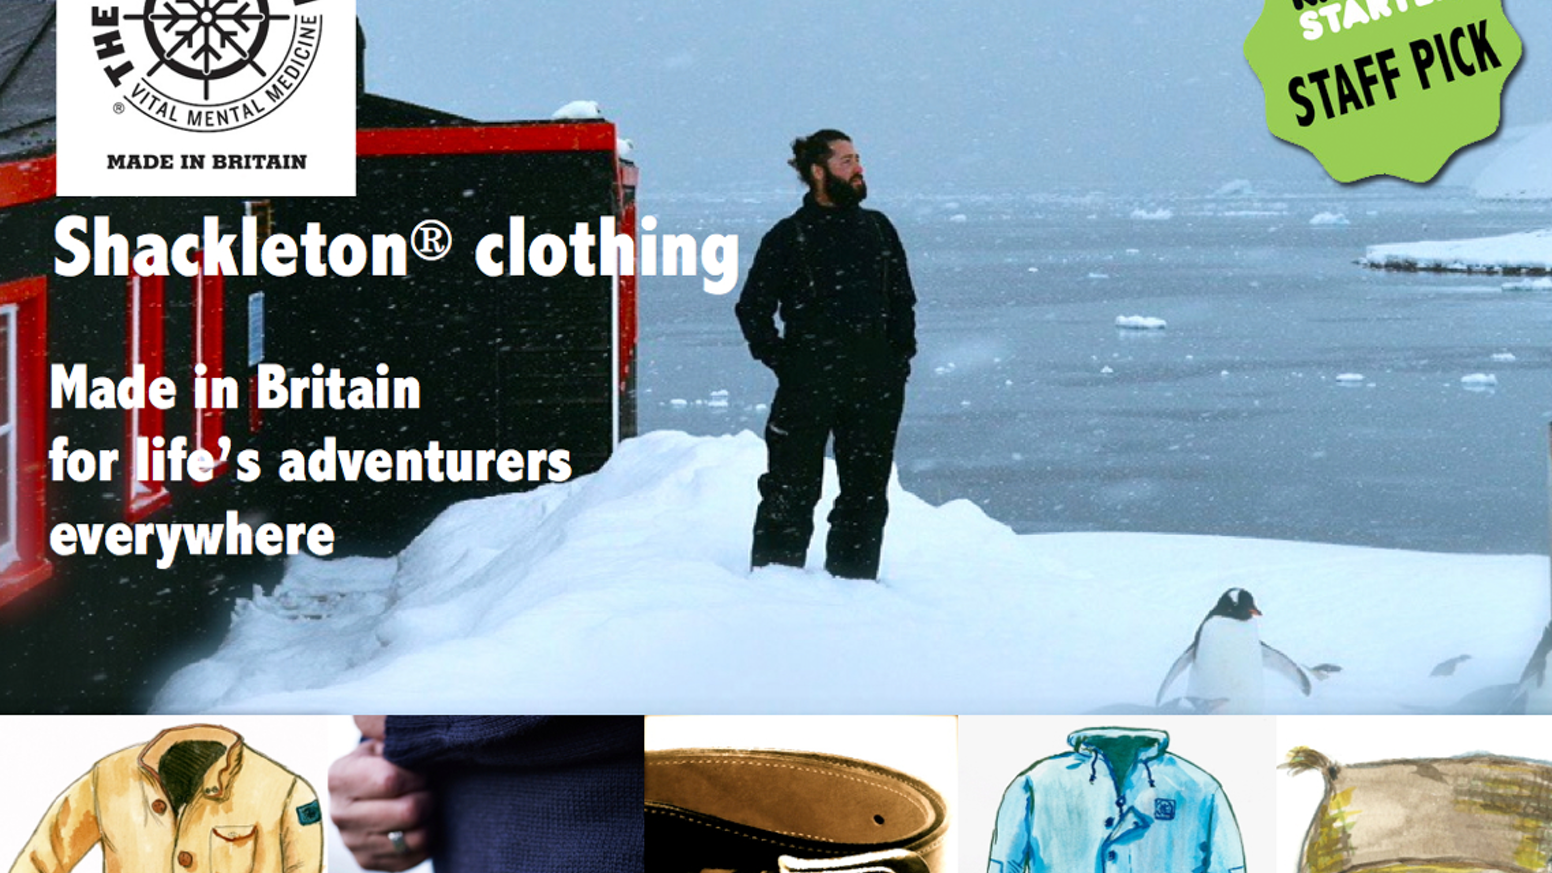 Premium British-made clothing for every day of life's adventure: designed from photographs of Antarctic explorer Ernest Shackleton.